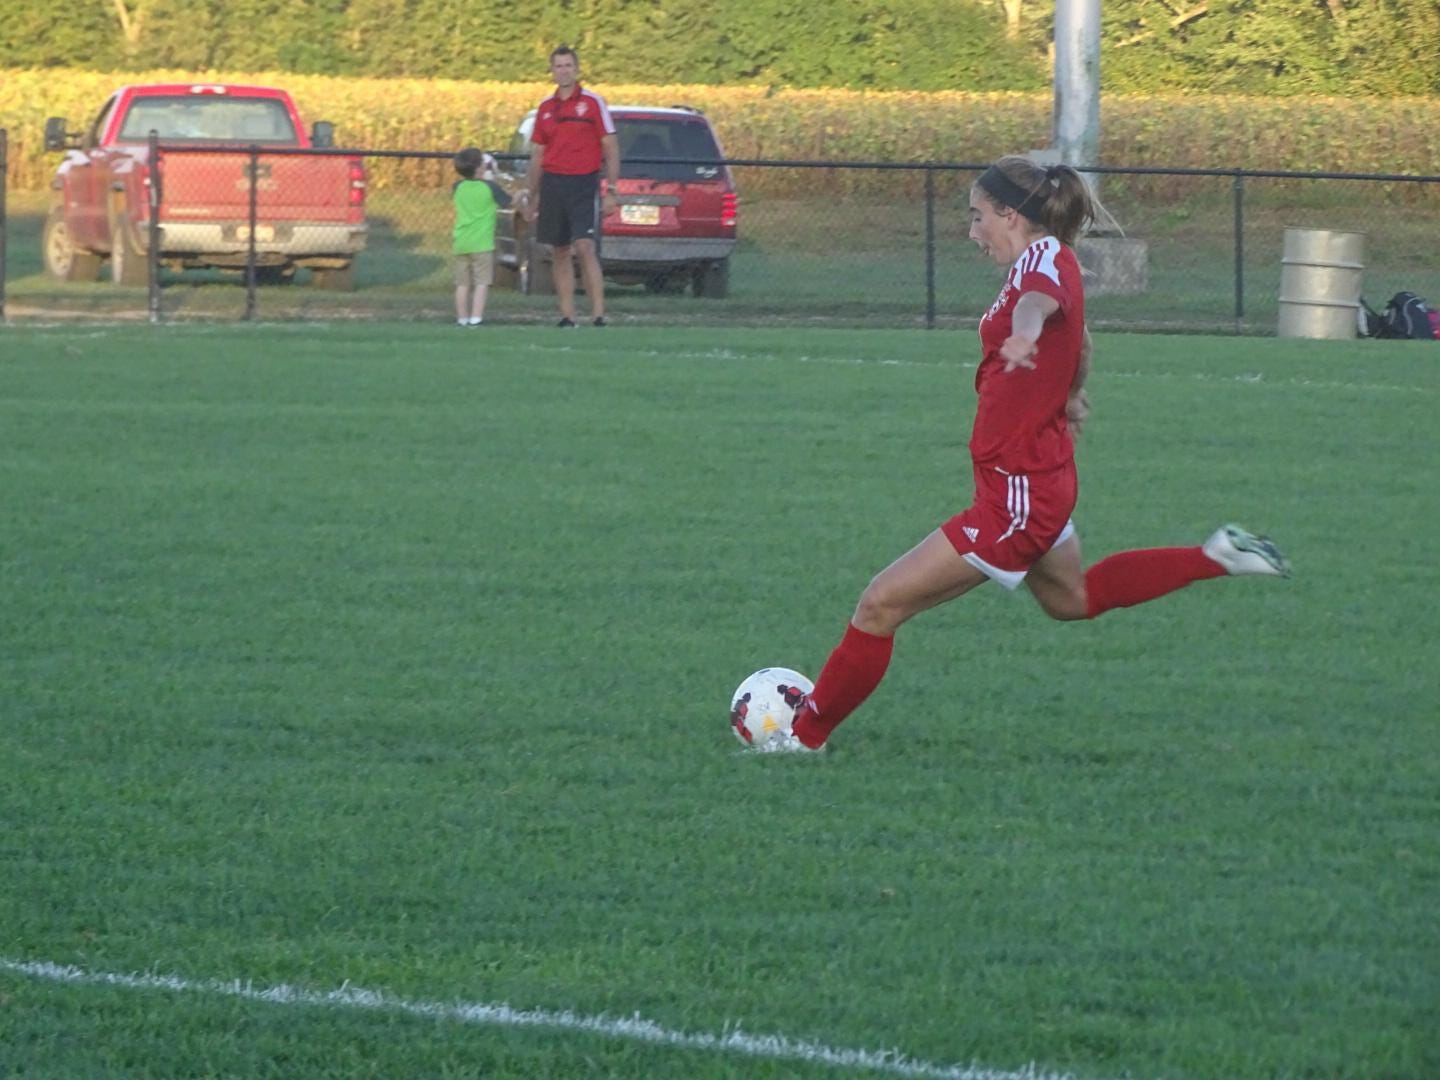 Samantha Swackhammer winds up for a shot on goal in the first half of Thursday's game.